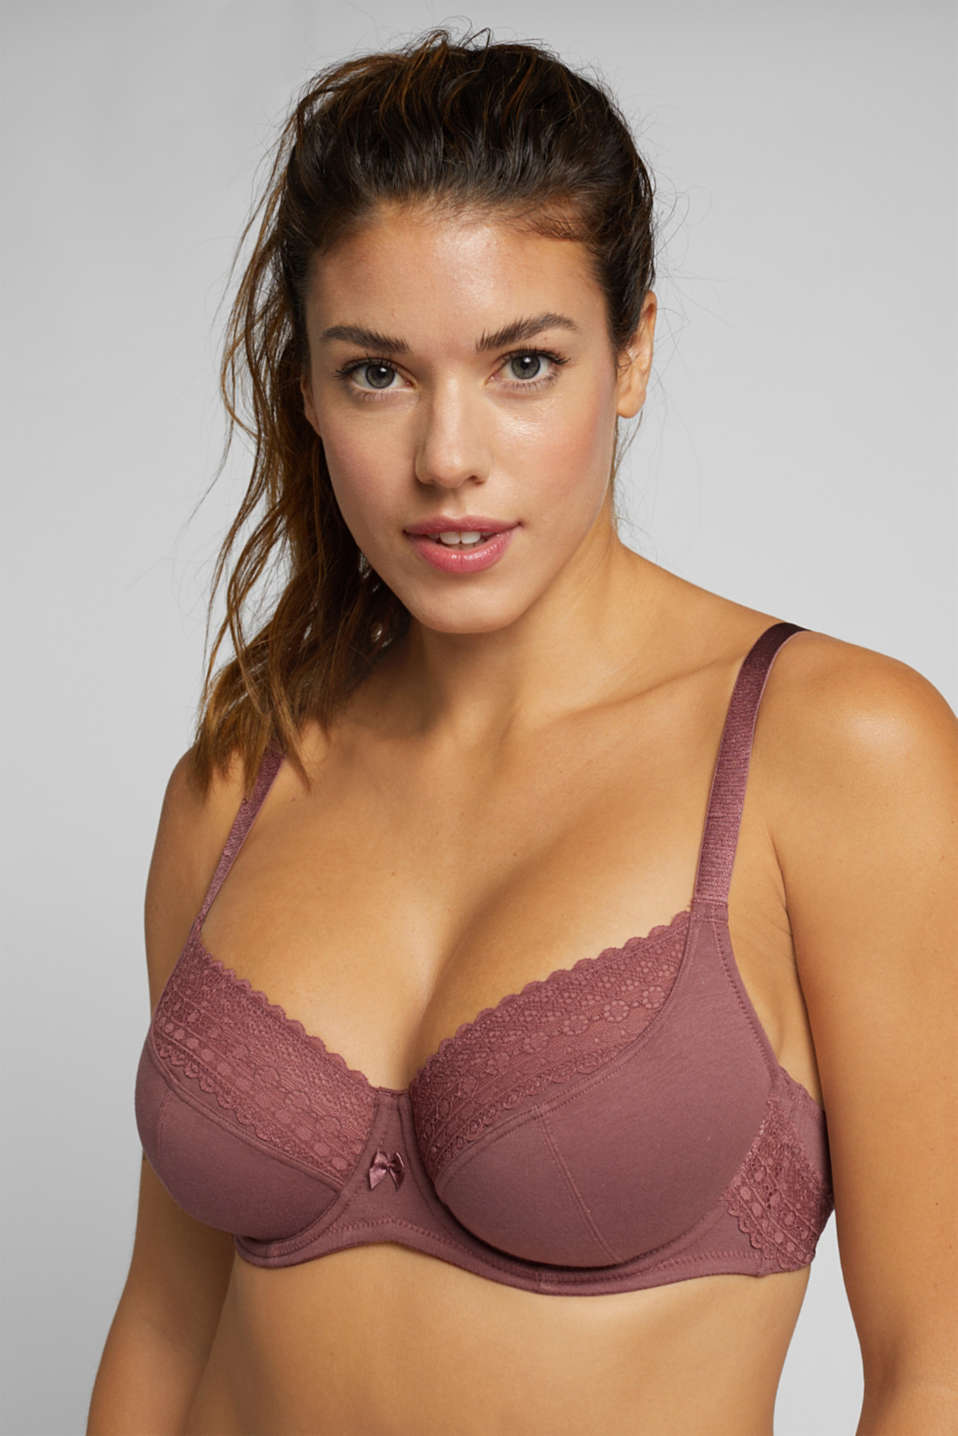 Esprit - Unpadded underwire bra with lace, made especially for larger cup sizes